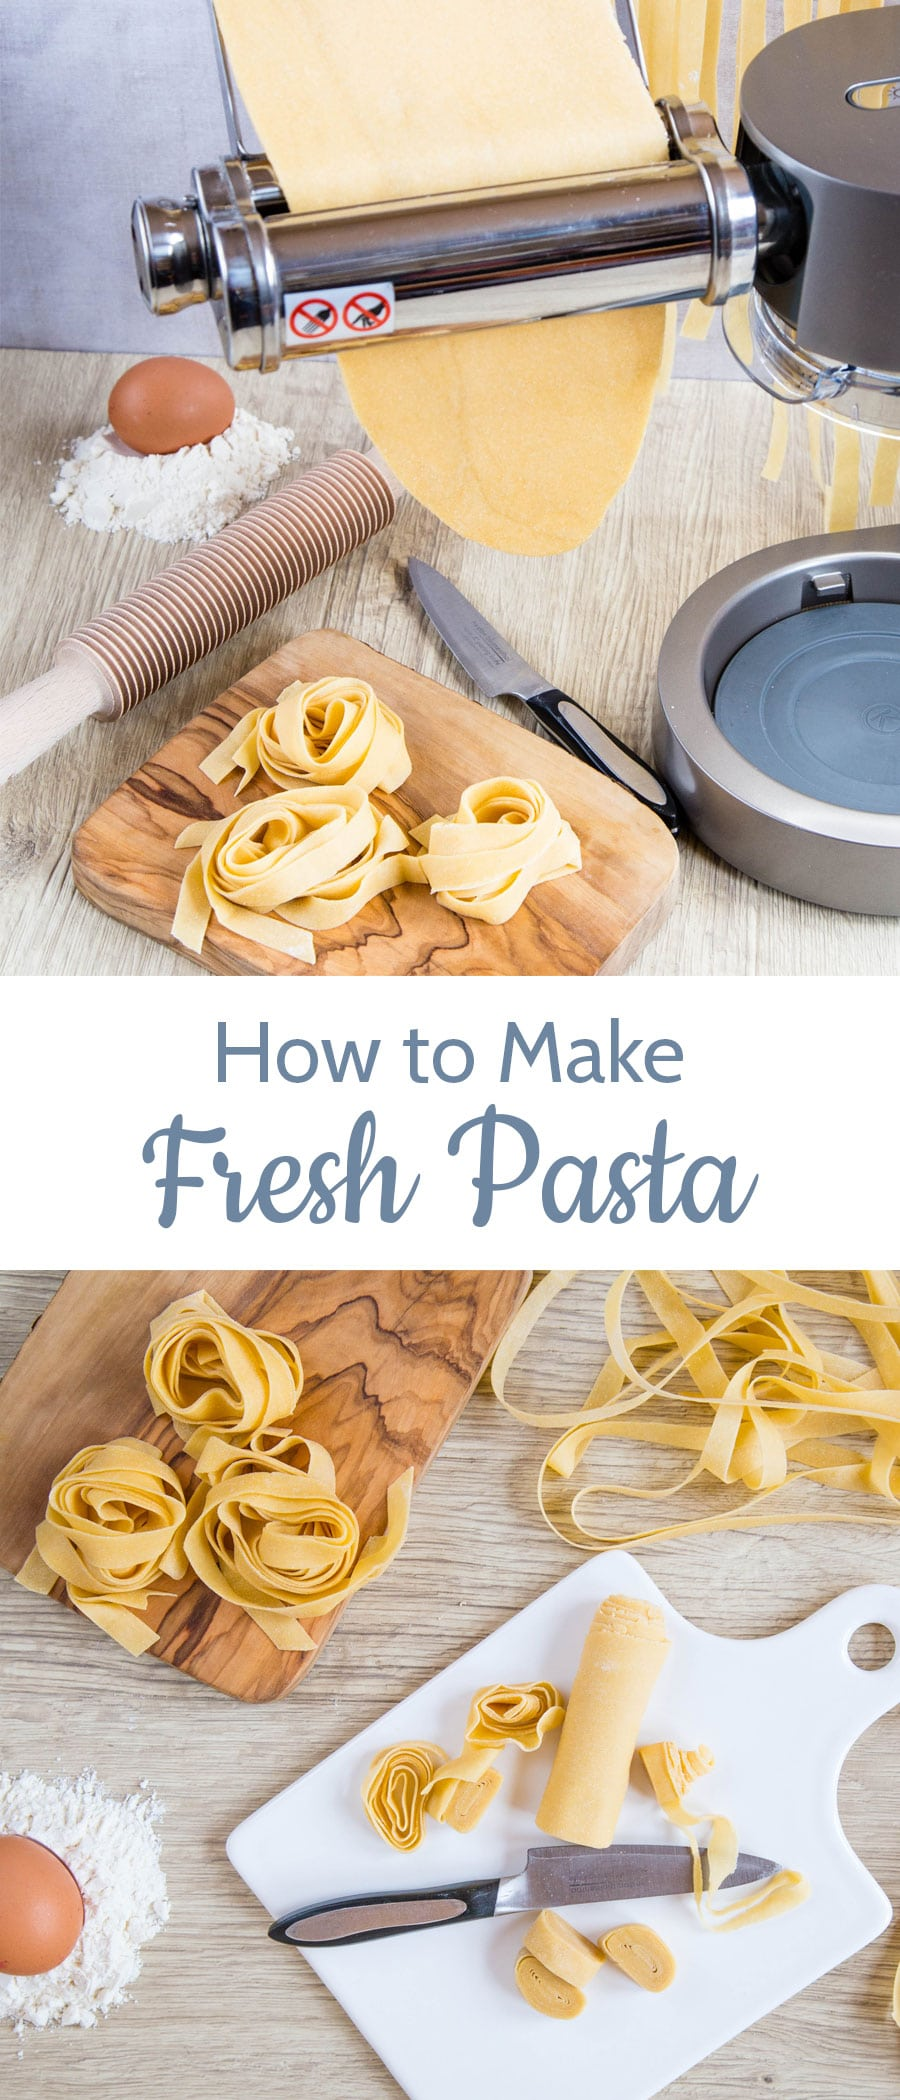 Learn how to make fresh homemade pasta with a stand mixer in this easy step by step tutorial that will have all your favorite pasta eaters begging to come over for pasta night!